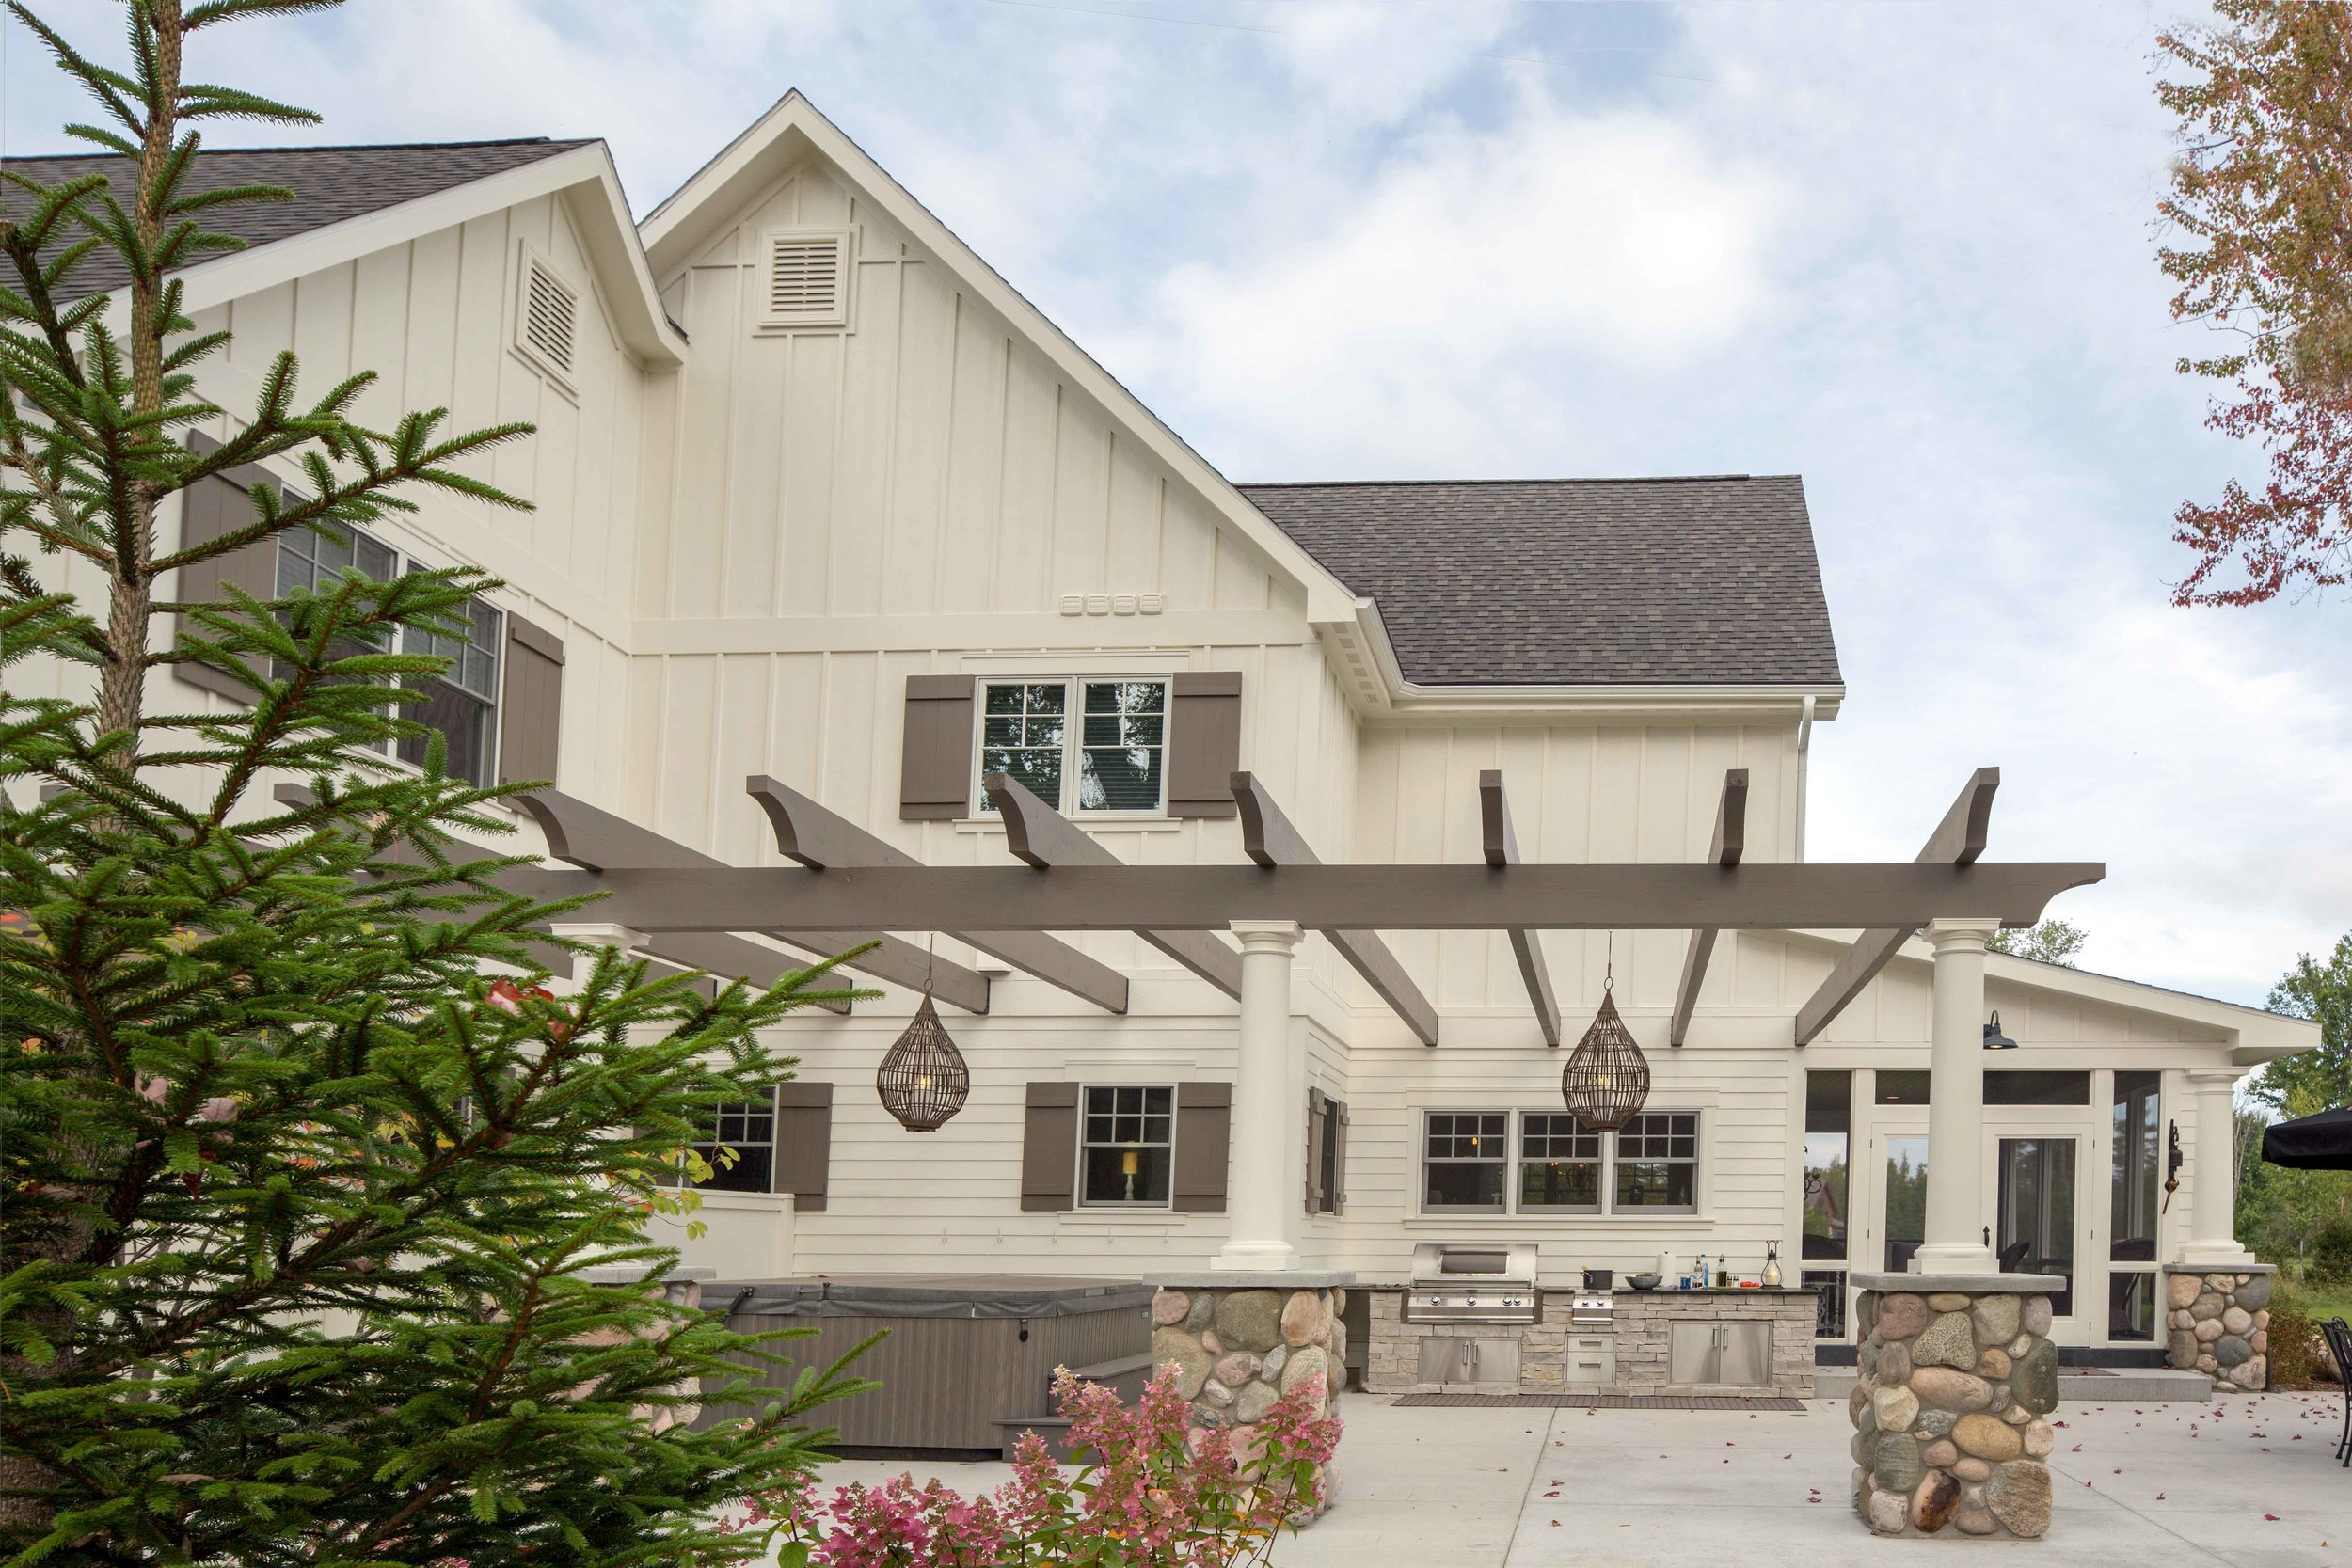 Northern Michigan custom home and remodeling portfolio by builders and contractors, Birchwood Construction Company.